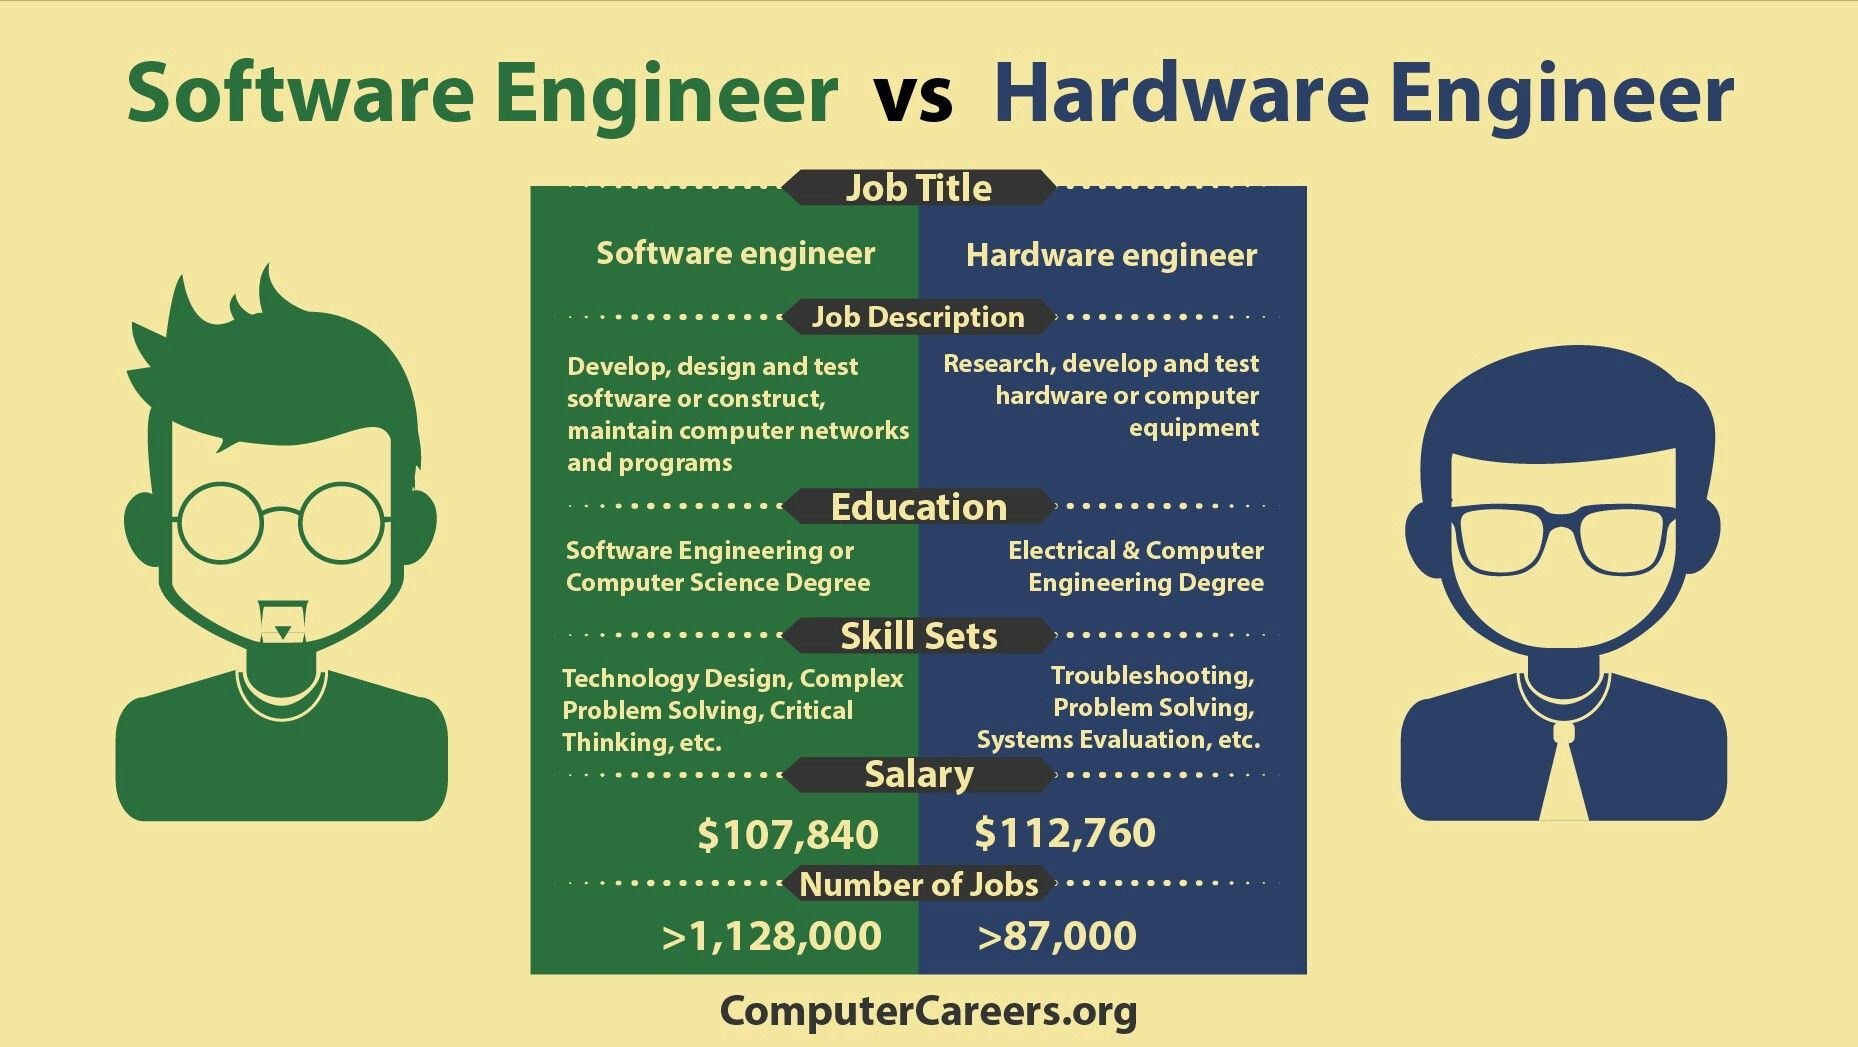 Pin By Robertt On Infographs Software Engineer Infographic Software Engineering